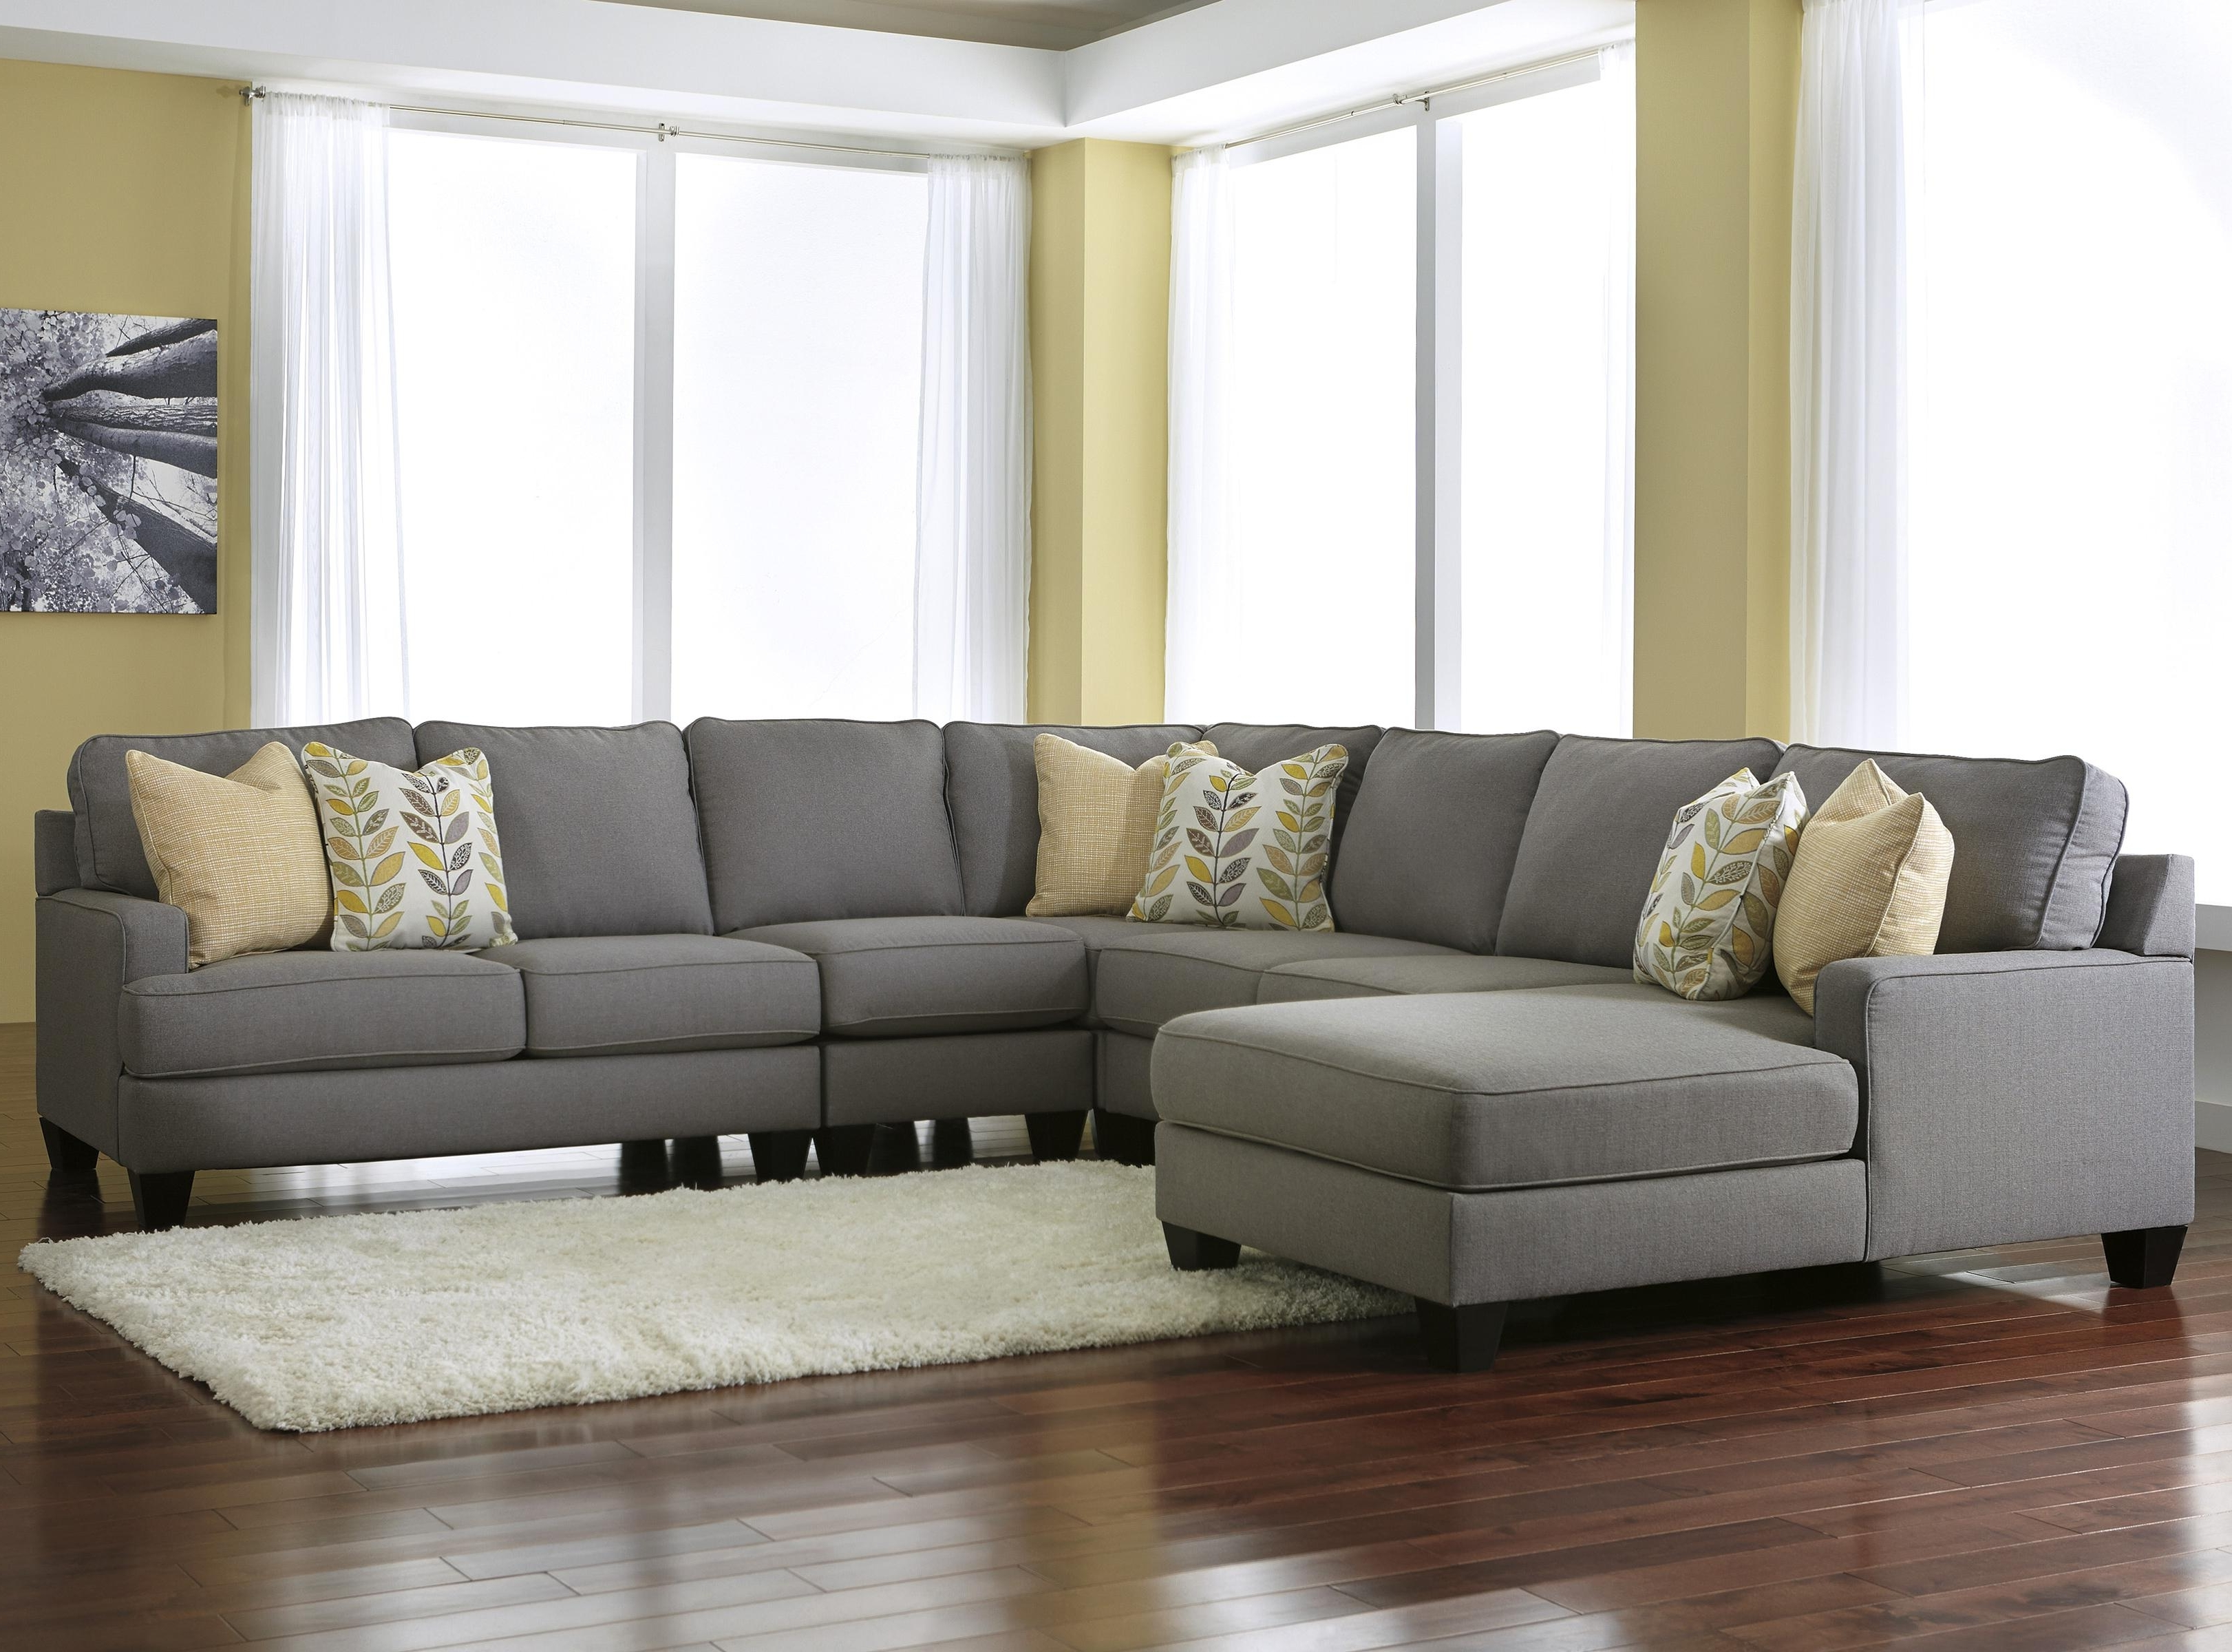 Harrisburg Pa Sectional Sofas For Recent Modern 5 Piece Sectional Sofa With Left Chaise & Reversible Seat (View 9 of 15)